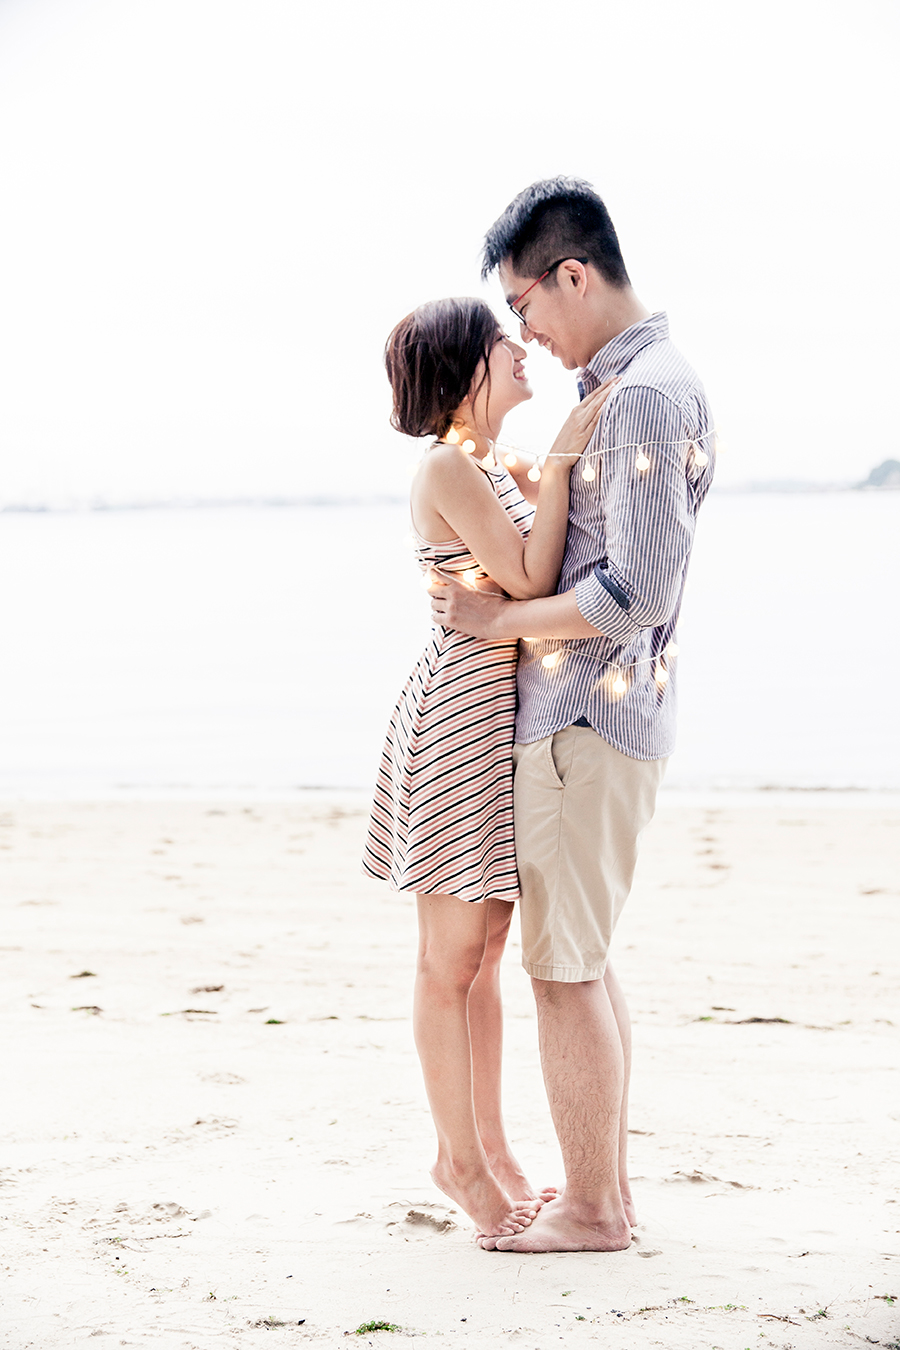 Beach prewedding photoshoot for RJ & JR, Singapore.